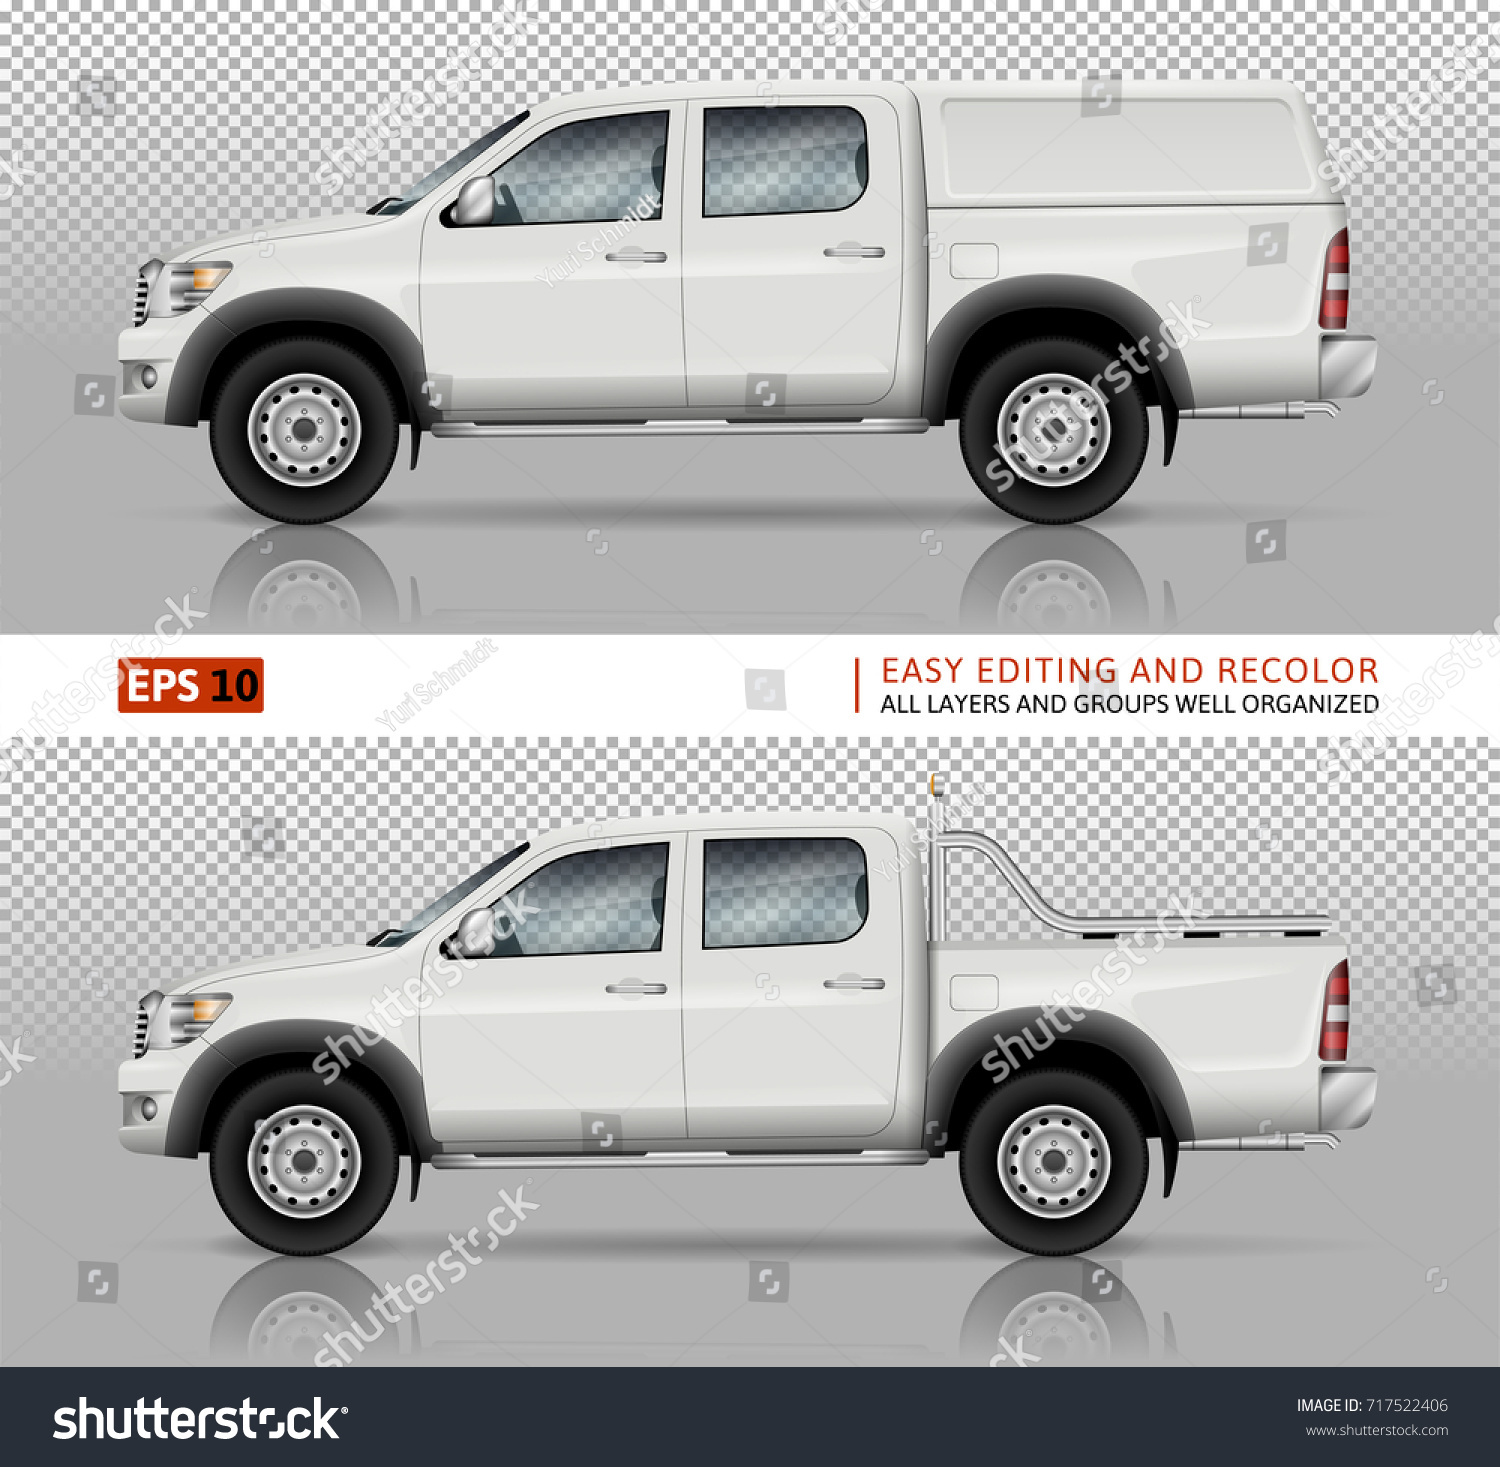 Pickup Truck Vector Mock Car Branding Stock Vector (2018) 717522406 ...